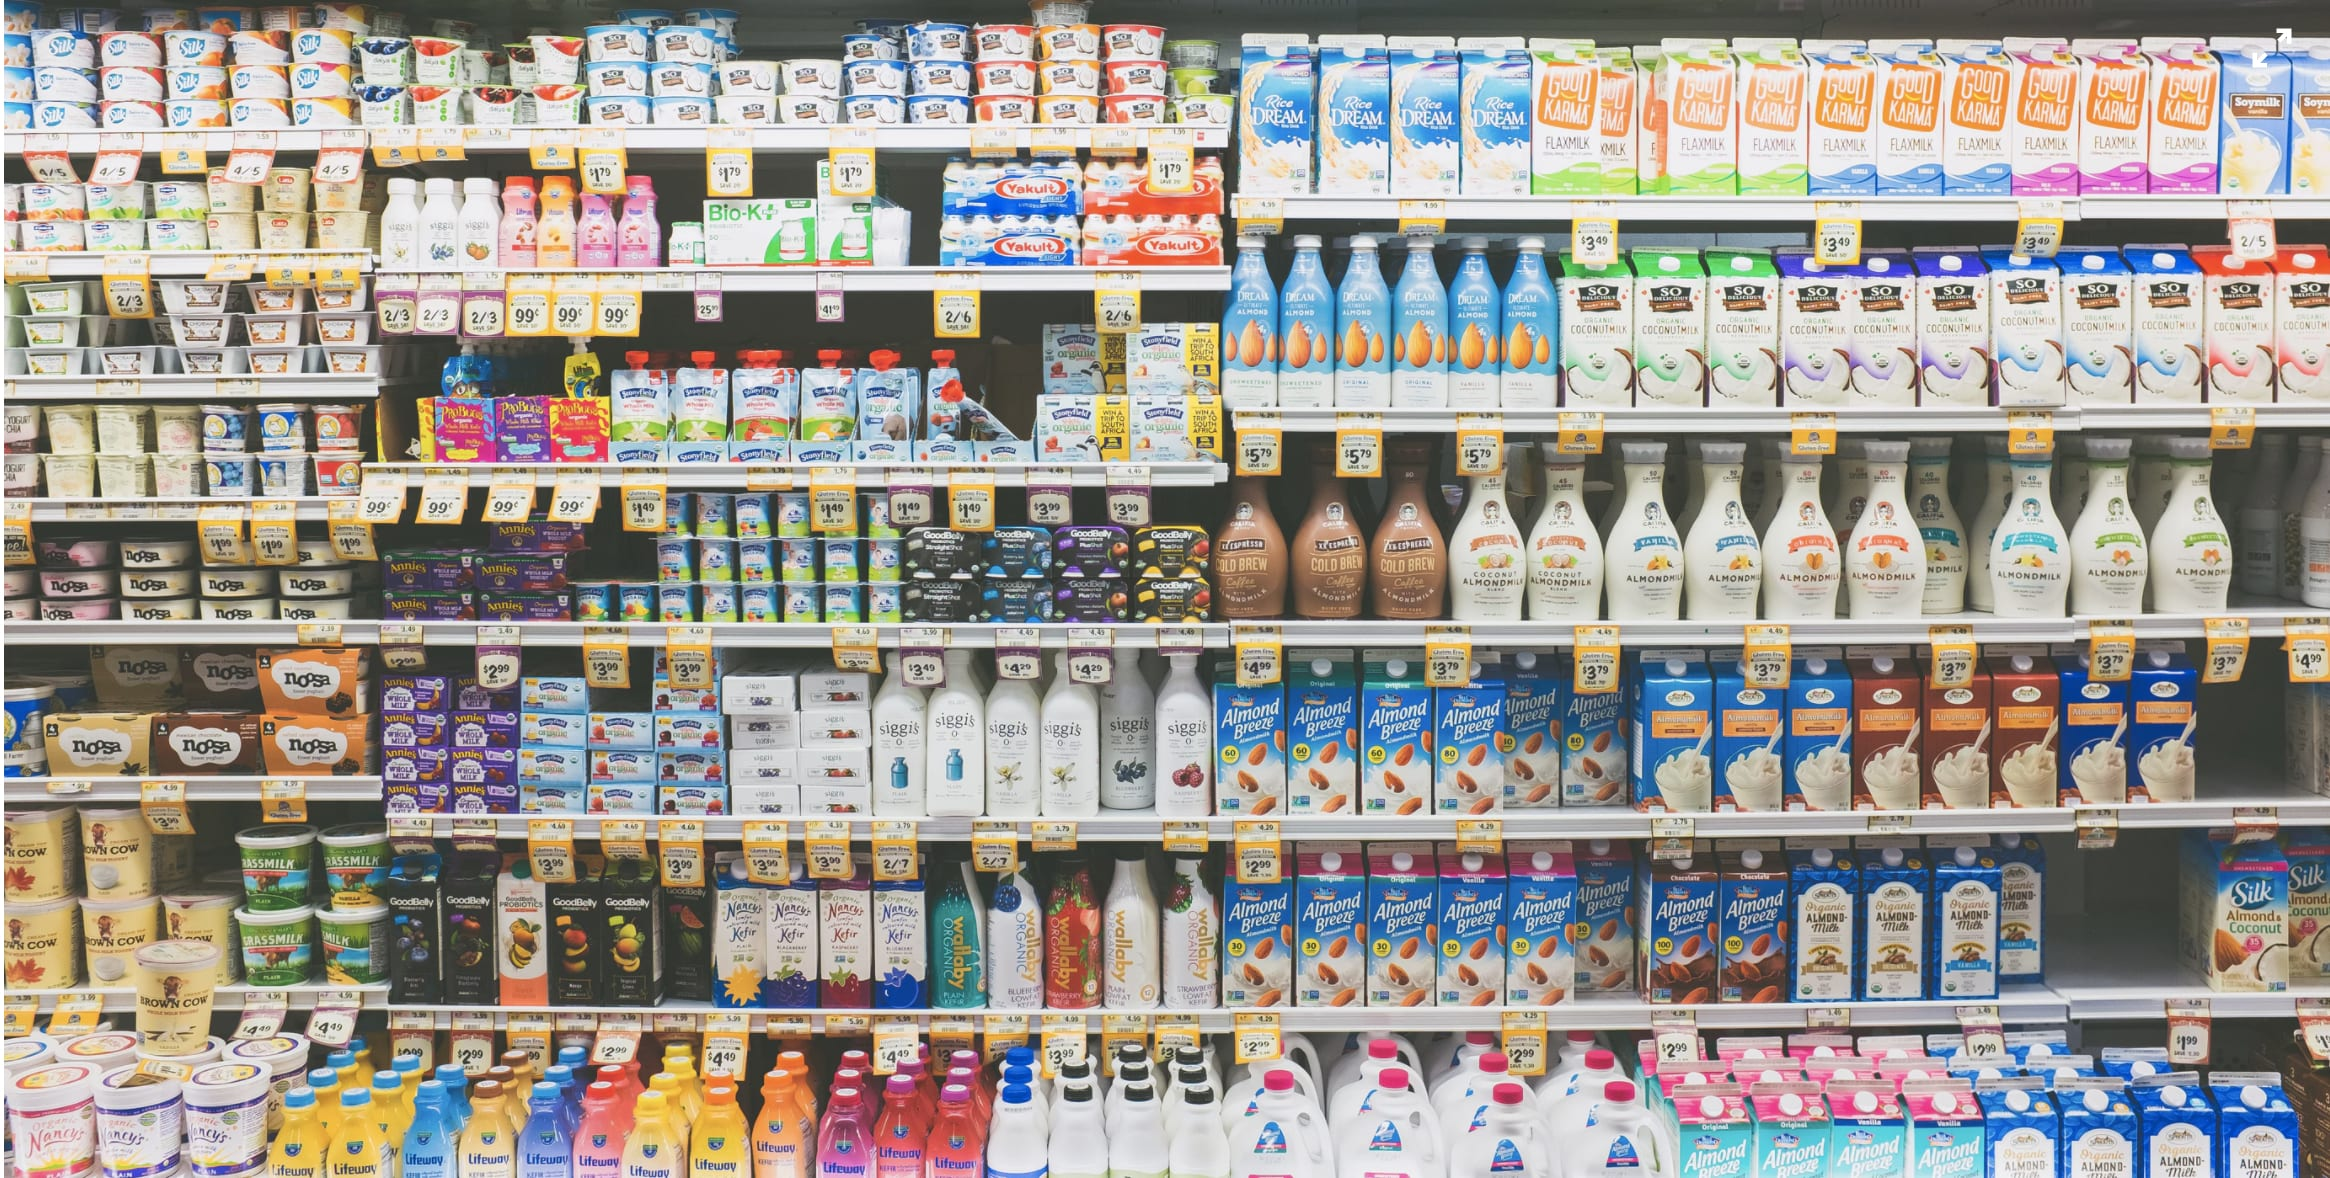 Shelves full of plant-based milk in the supermarket